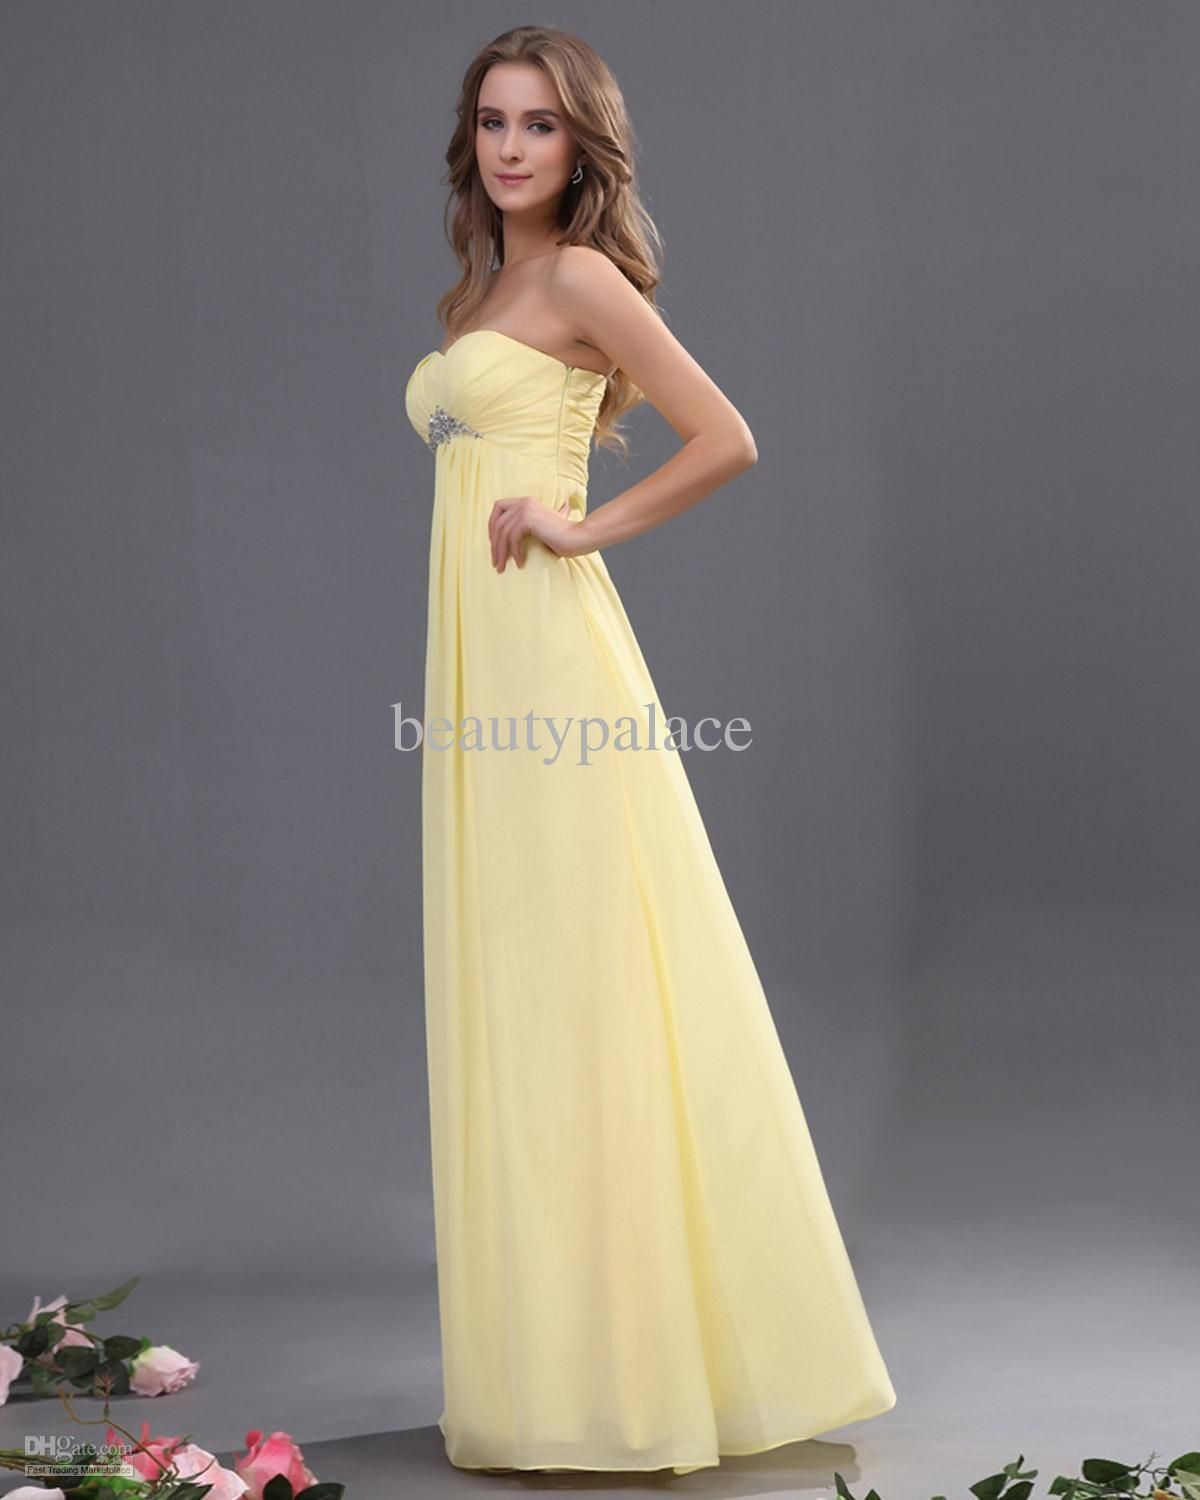 Blue and yellow bridesmaid dresses top 50 yellow bridesmaid blue and yellow bridesmaid dresses ombrellifo Image collections